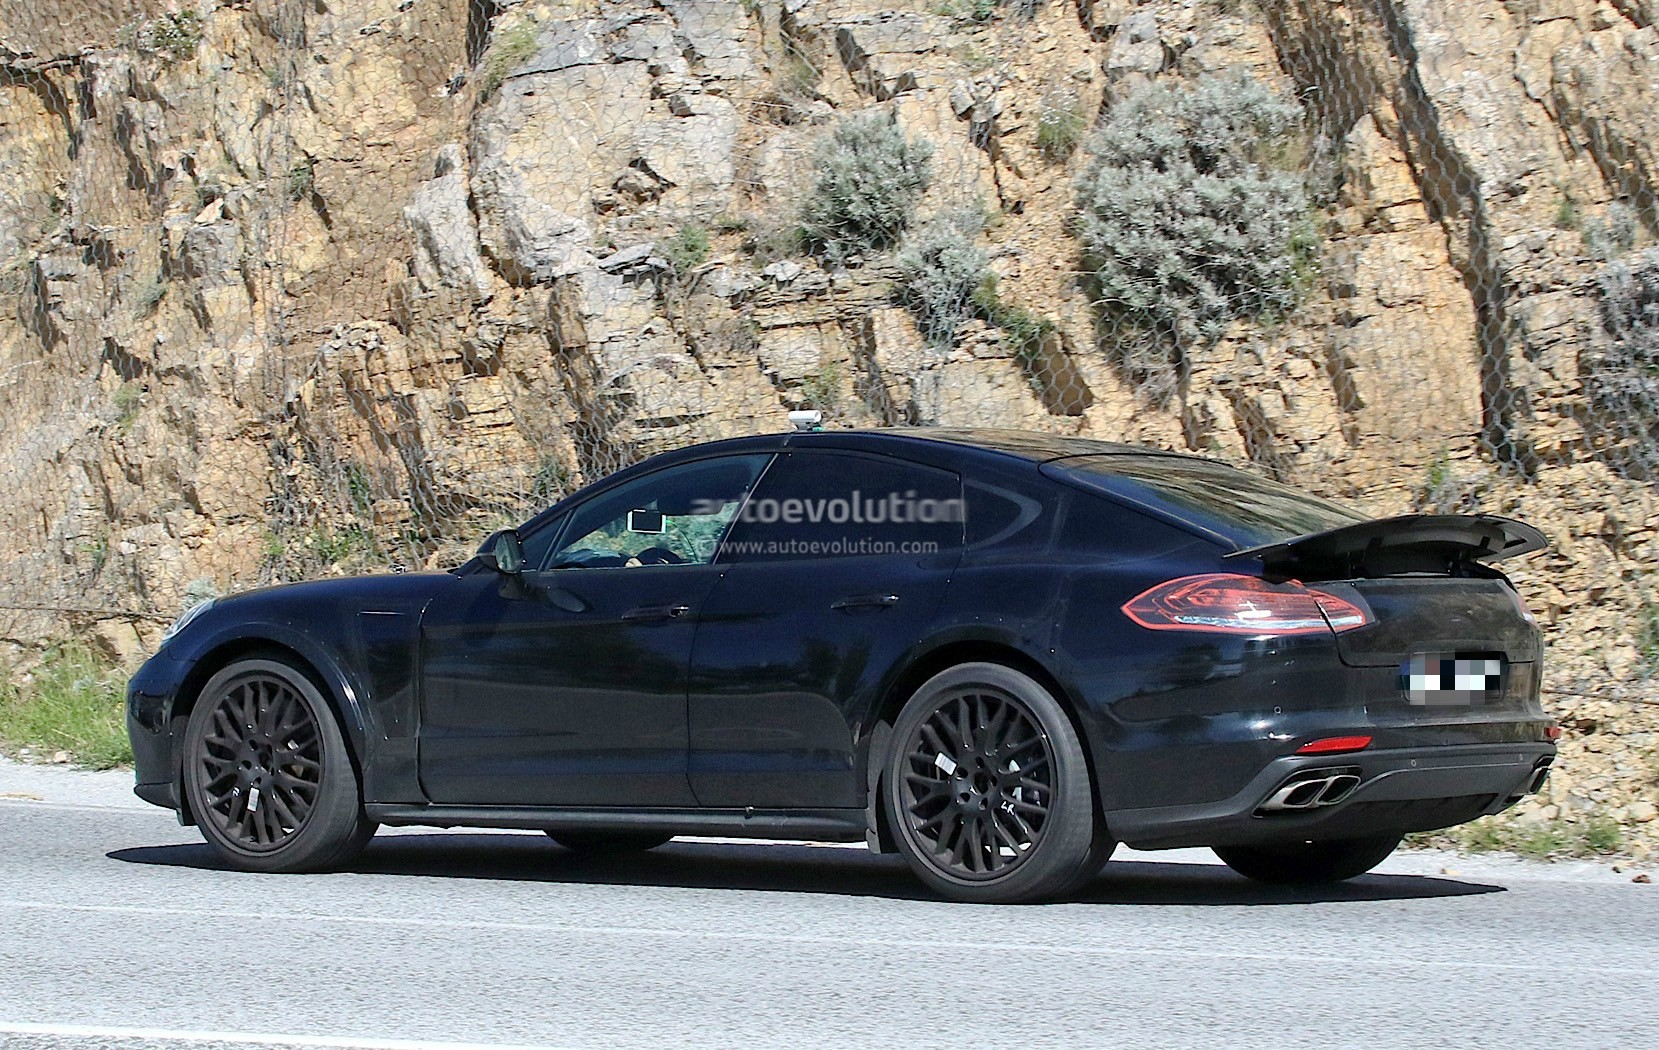 Porsche also Porsche Cayenne Gts further Maxresdefault furthermore Possible Porsche Panamera Based Coupe Spied For The First Time further Porsche Cayenne Gts X Wallpaper. on porsche 928 gts